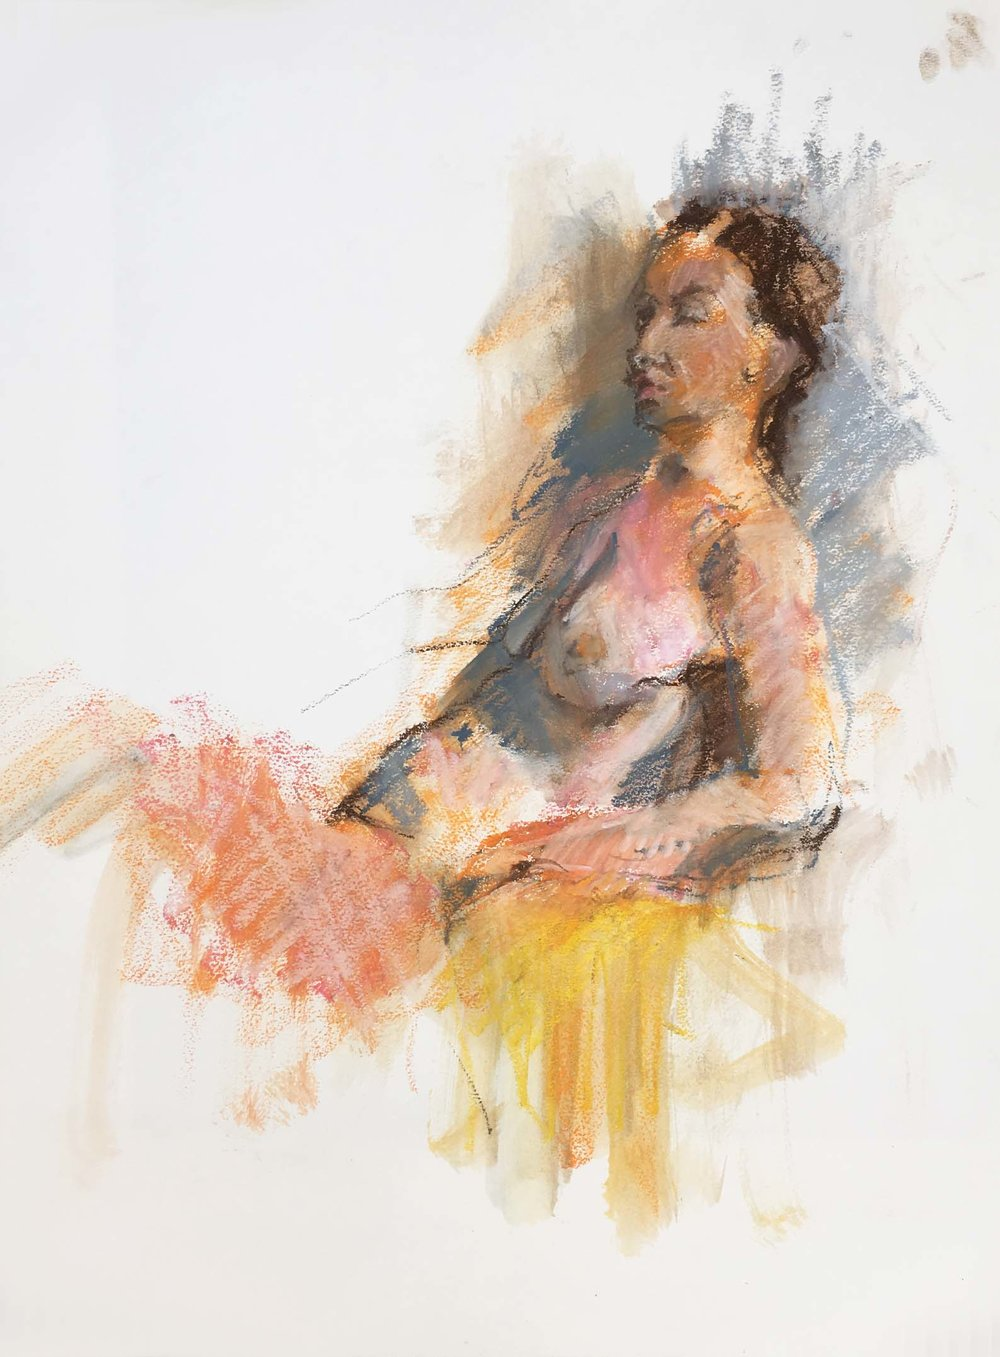 Woman on a Mustard Chair, 2005. Oil pastel on paper, w50 x h65.5cm.